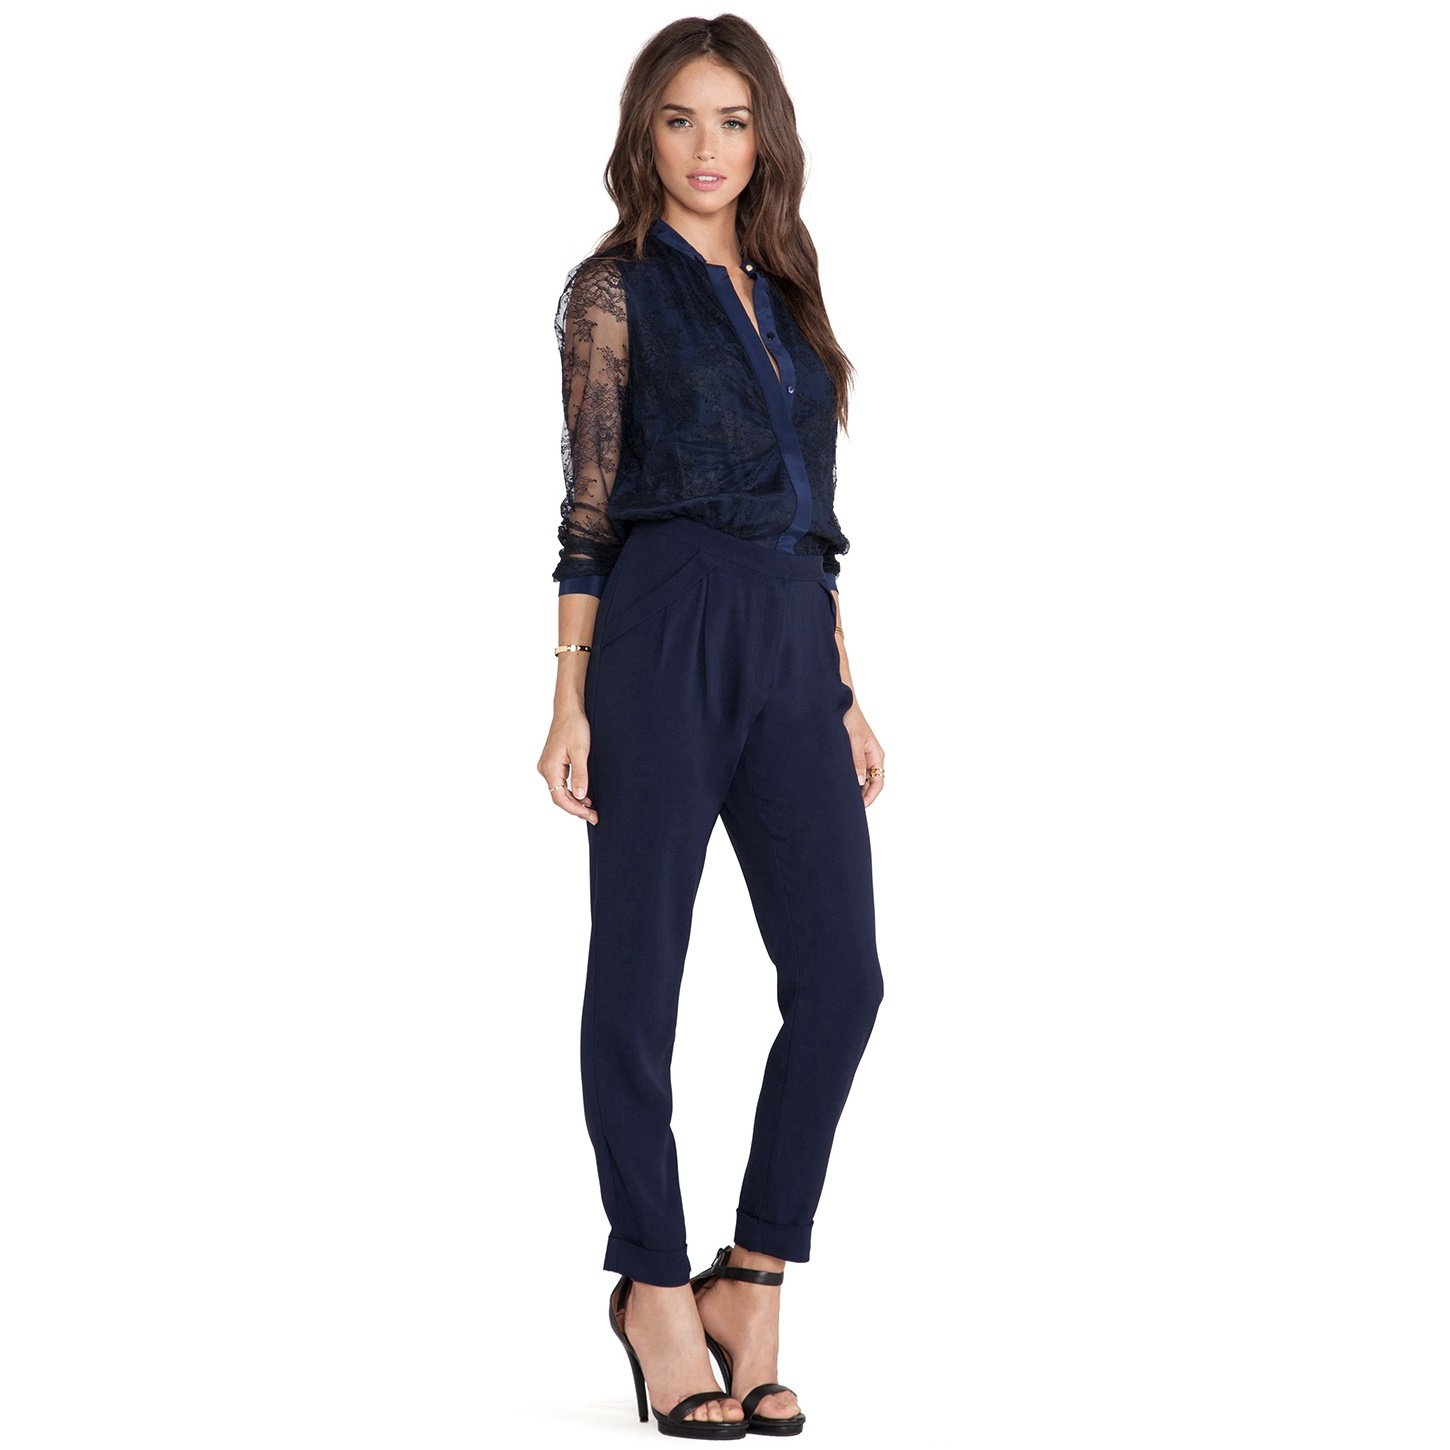 Marchesa Voyage Lace Sleeved Jumpsuit - US 6 - French Navy/Black